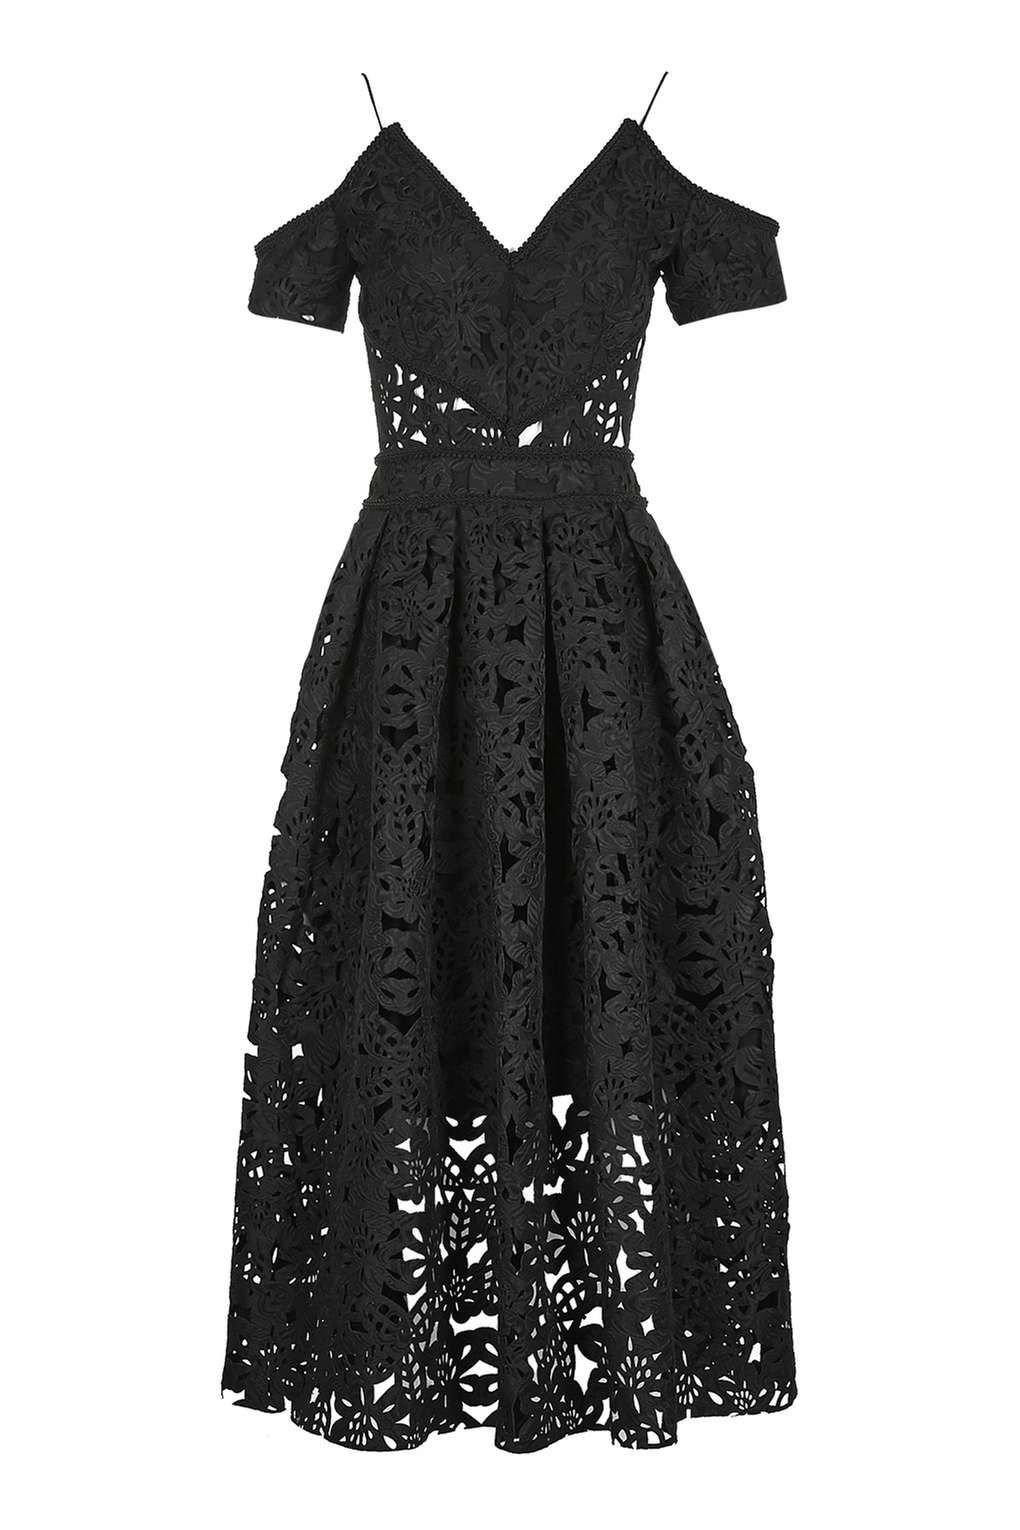 Pin On Dresses General Shopping